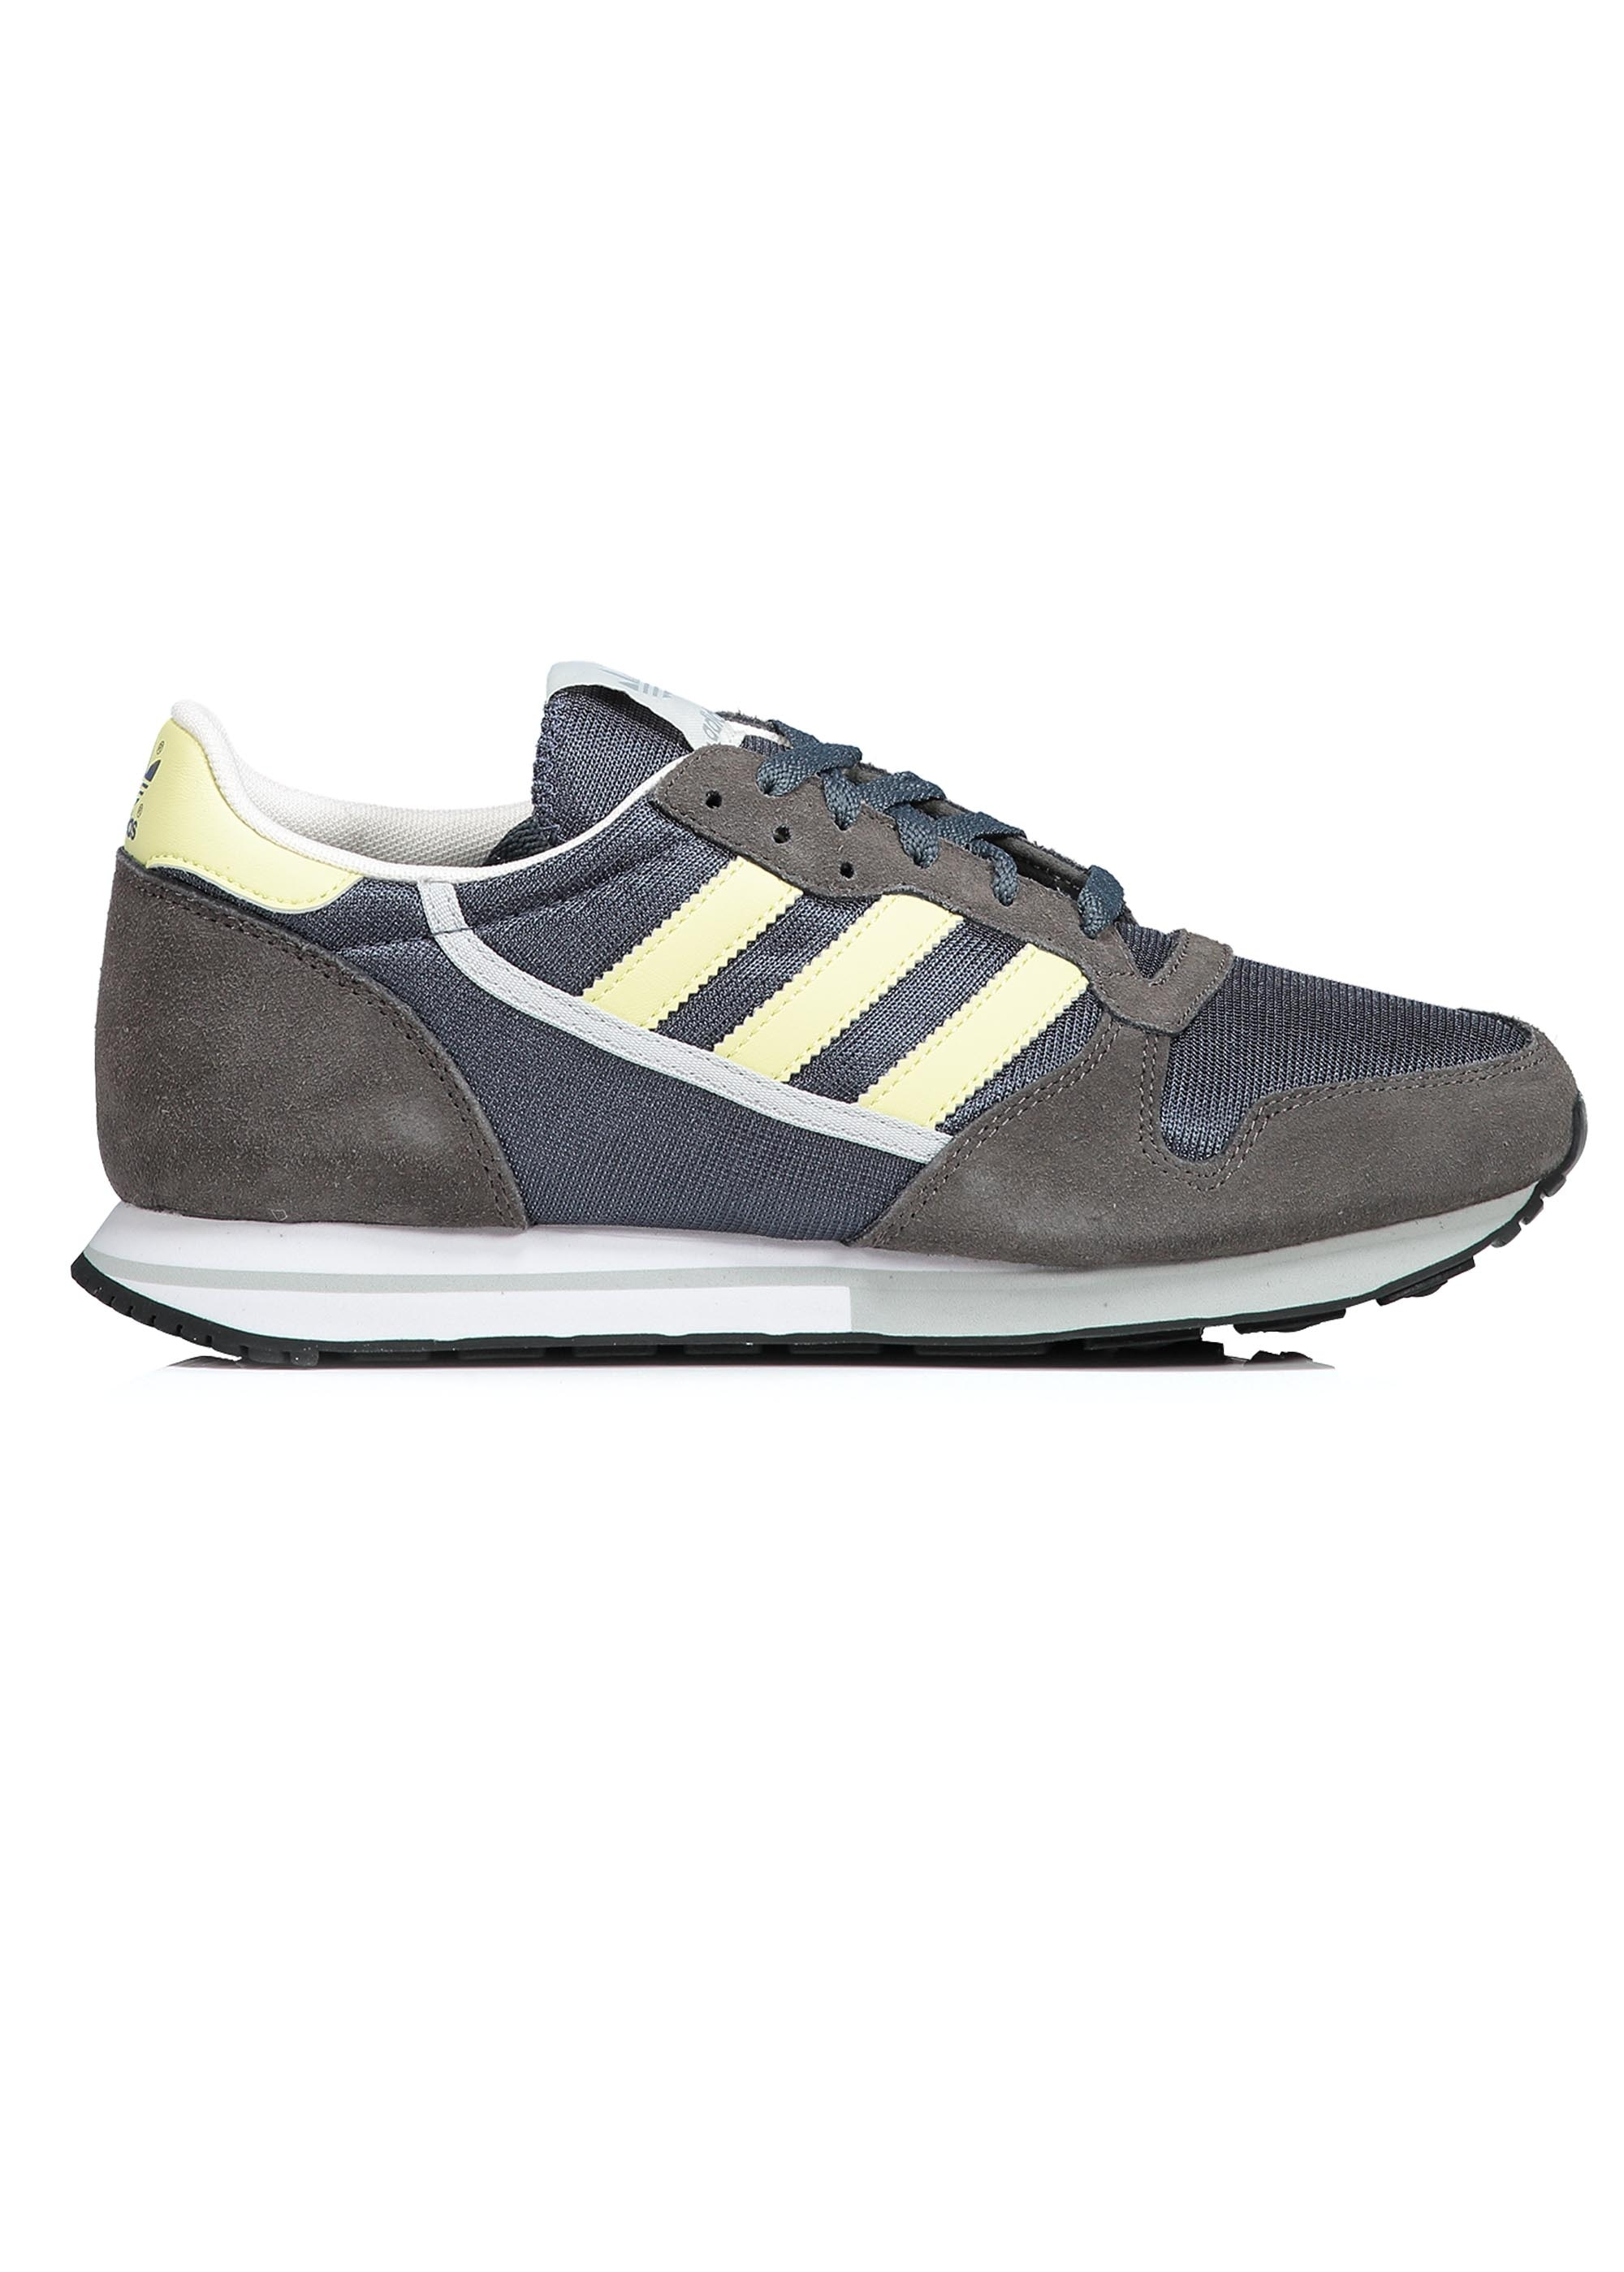 80a7011cb adidas Originals Spezial ZX 280 SPZL - Navy   Grey - Trainers from ...